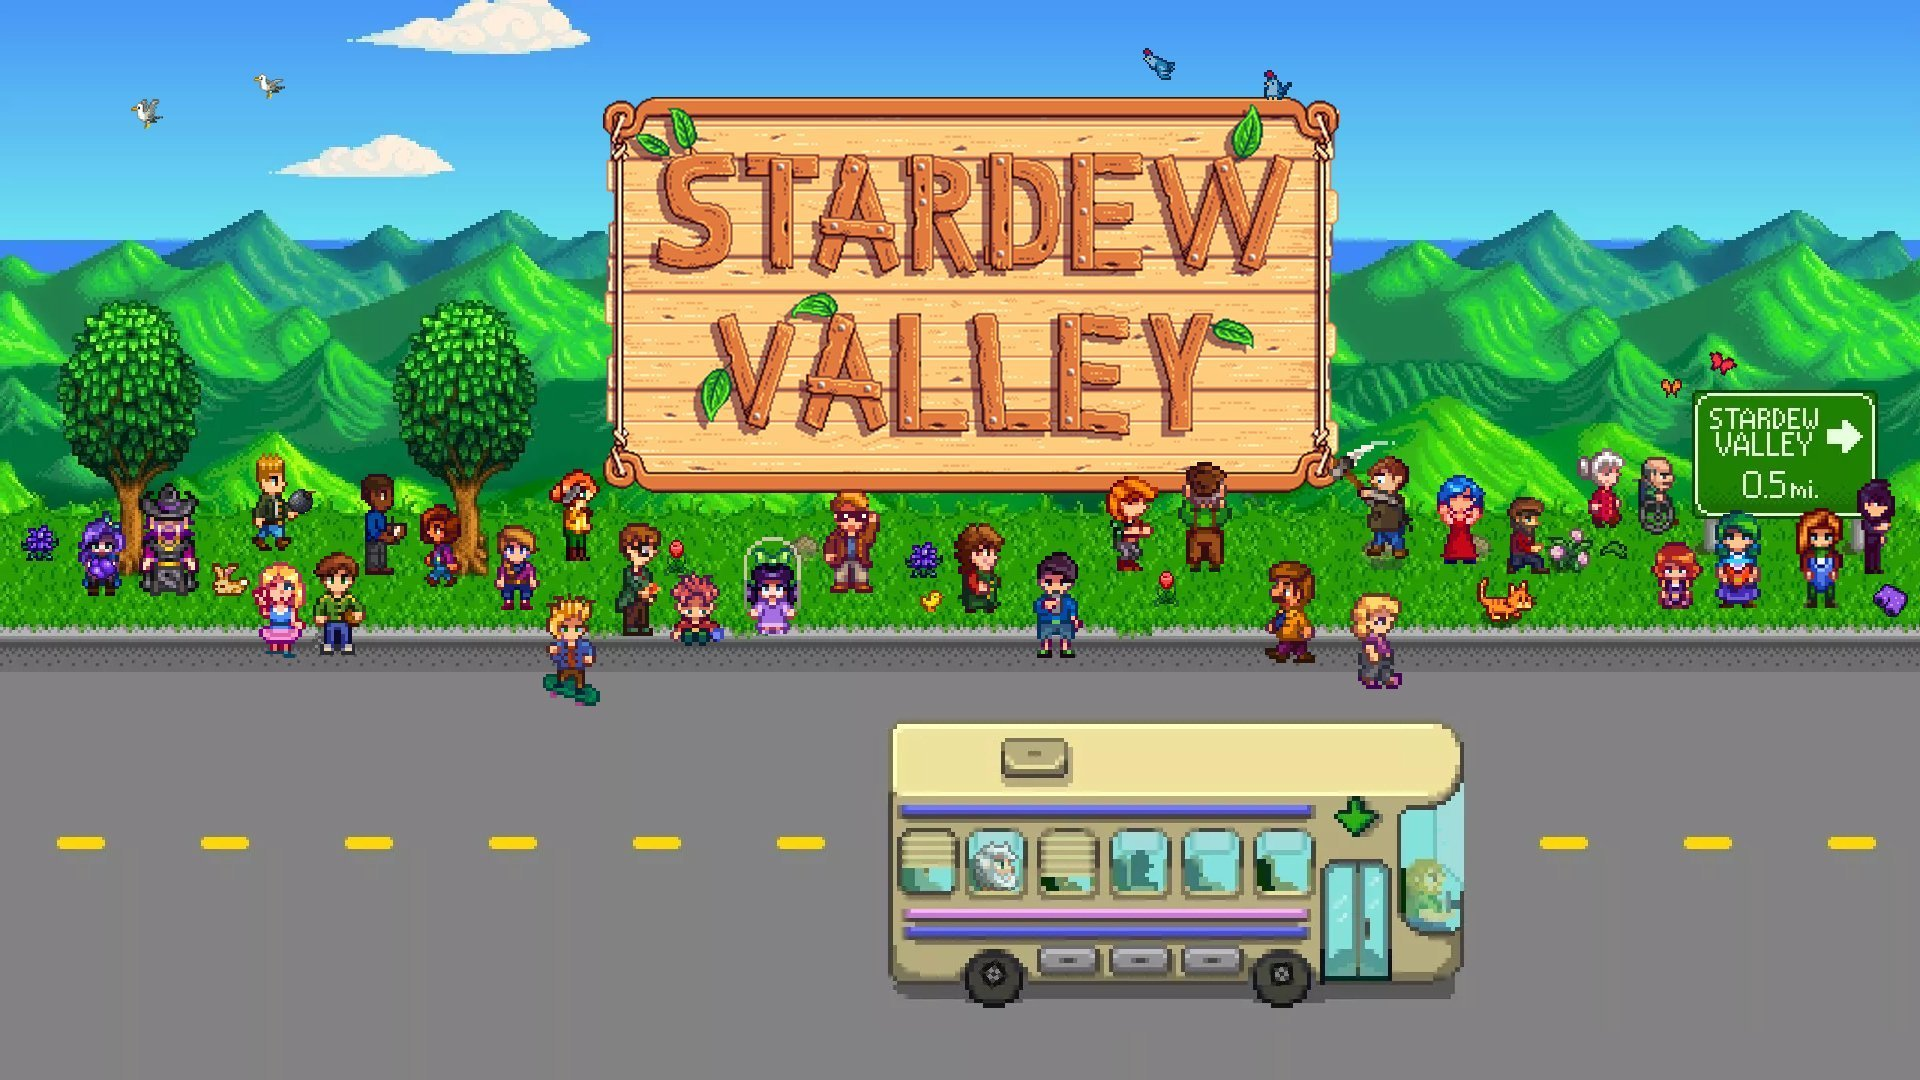 Stardew Valley Multiplayer PS4: Is There Multiplayer on